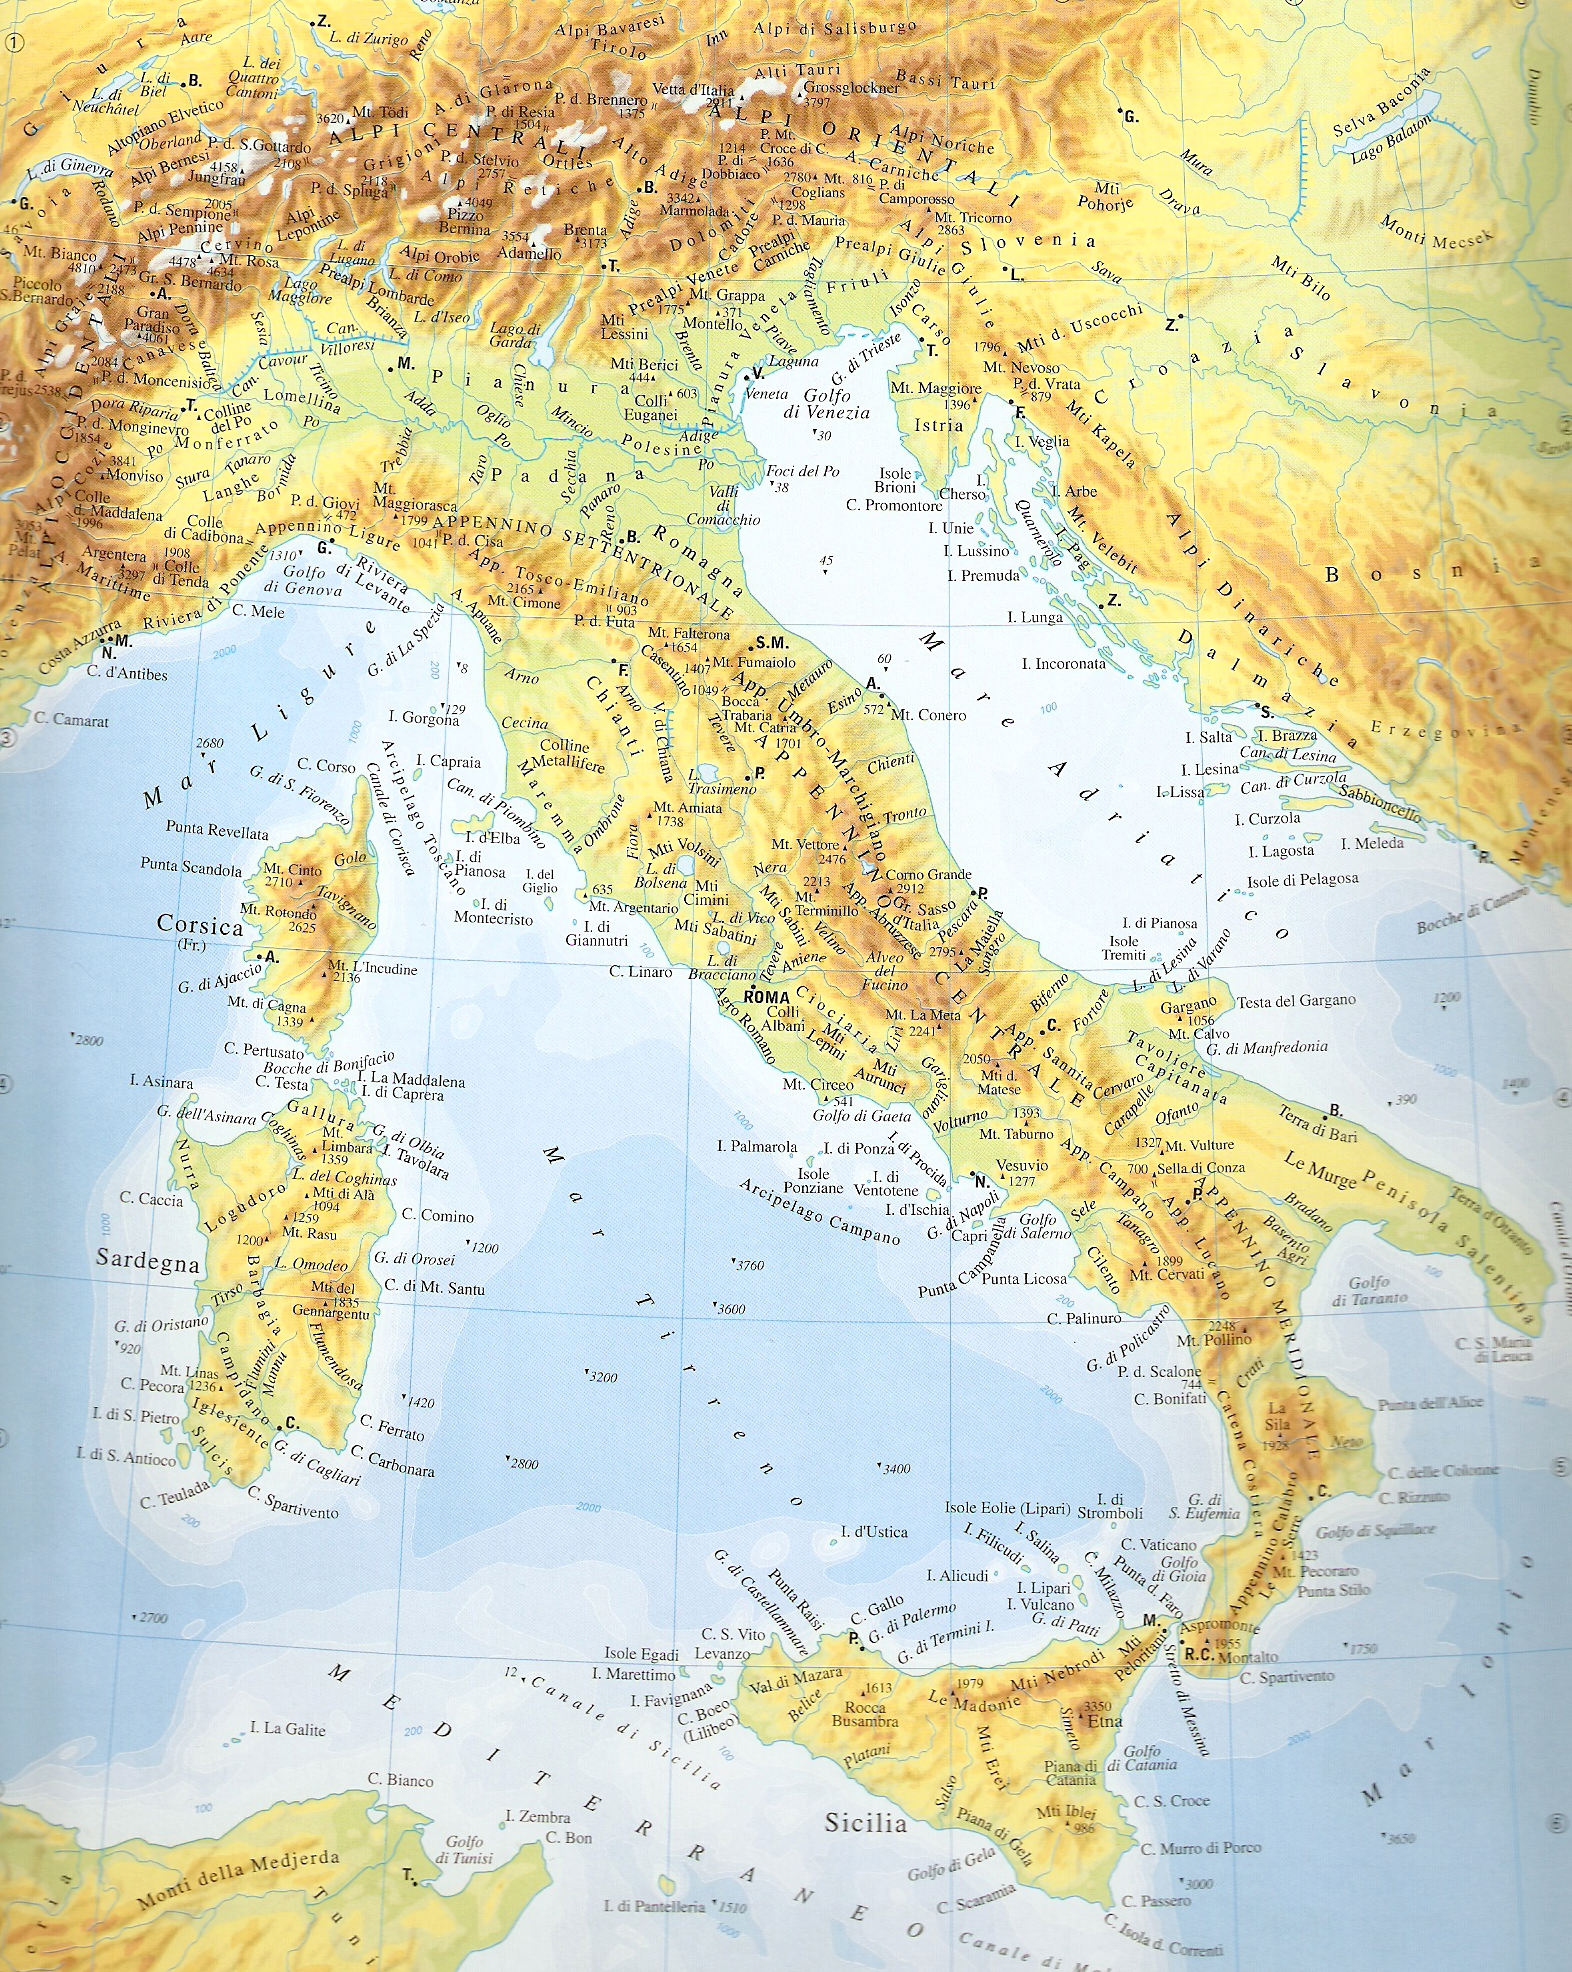 Cartina Nord Italia Geografica.Cartina Dell Italia Fisica Da Stampare Cartina Dell Italia